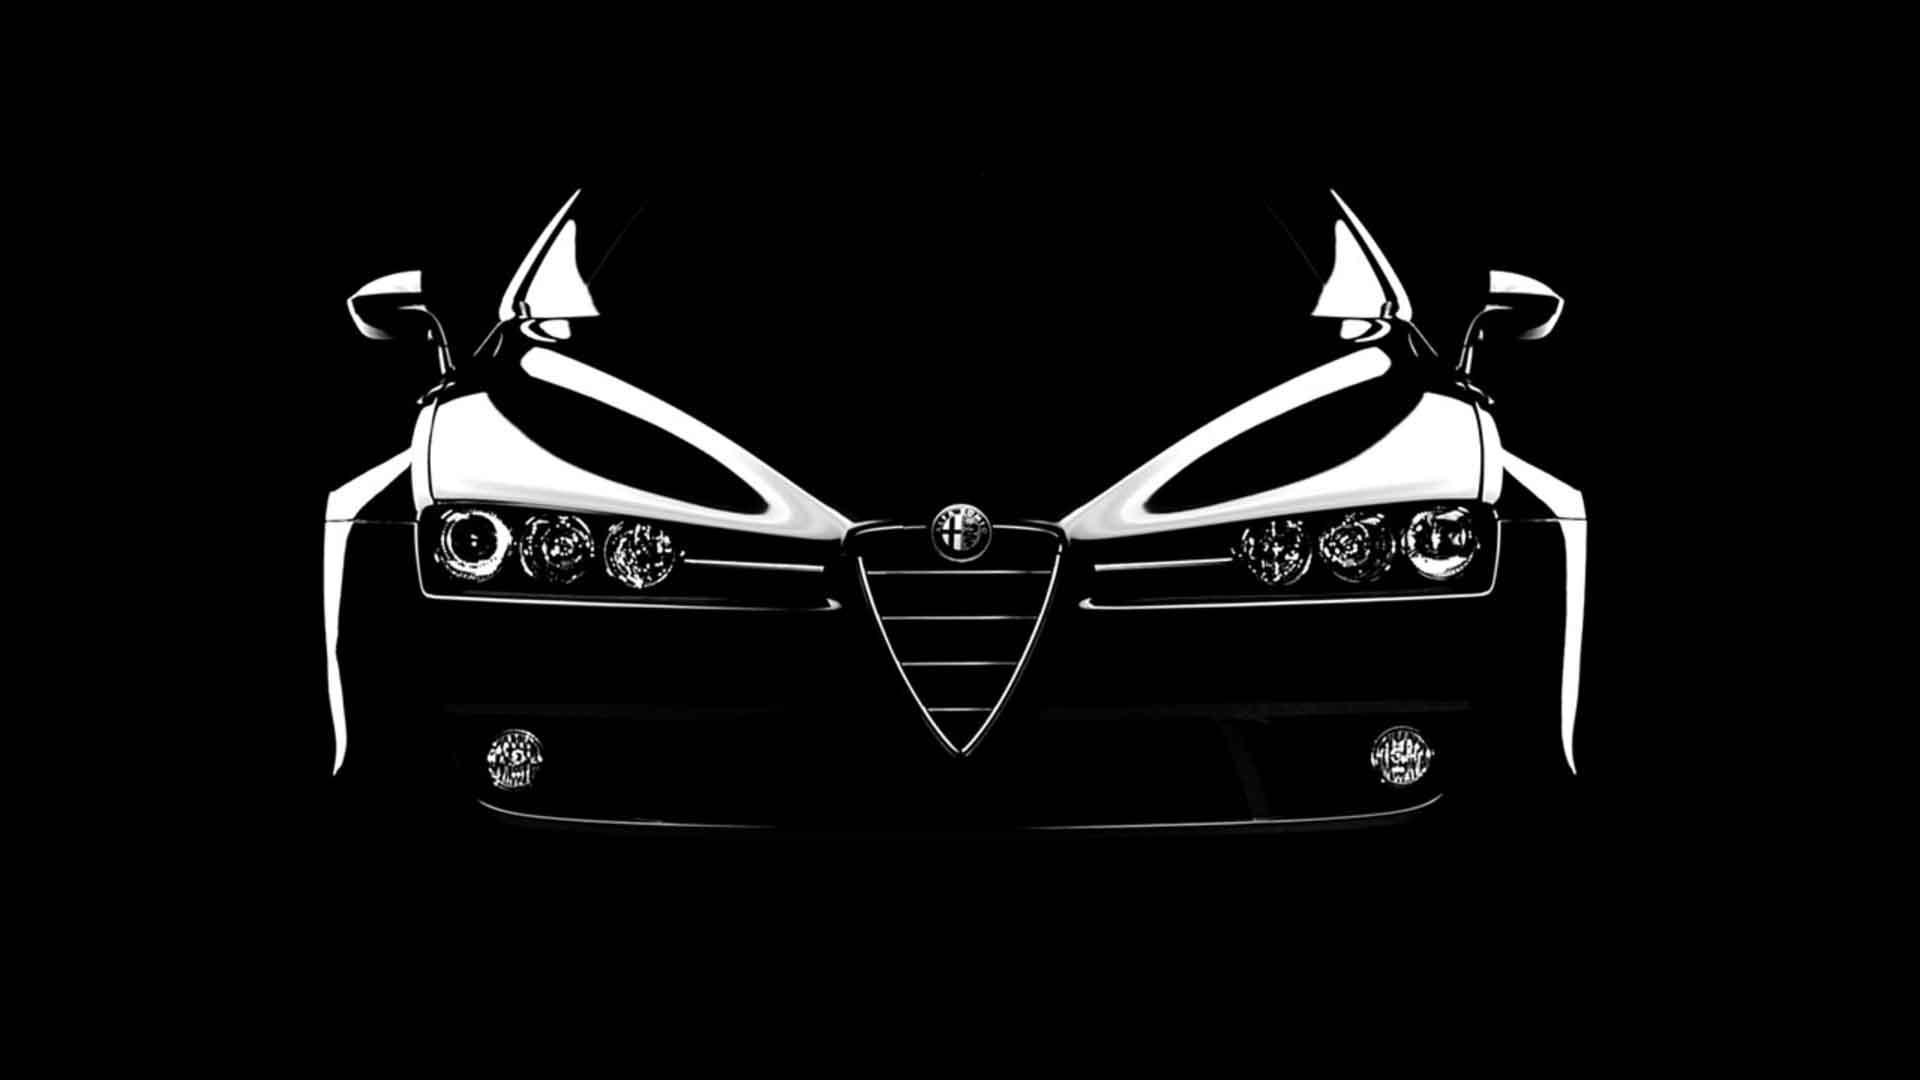 Alfa Romeo Wallpaper on alfa romeo 164